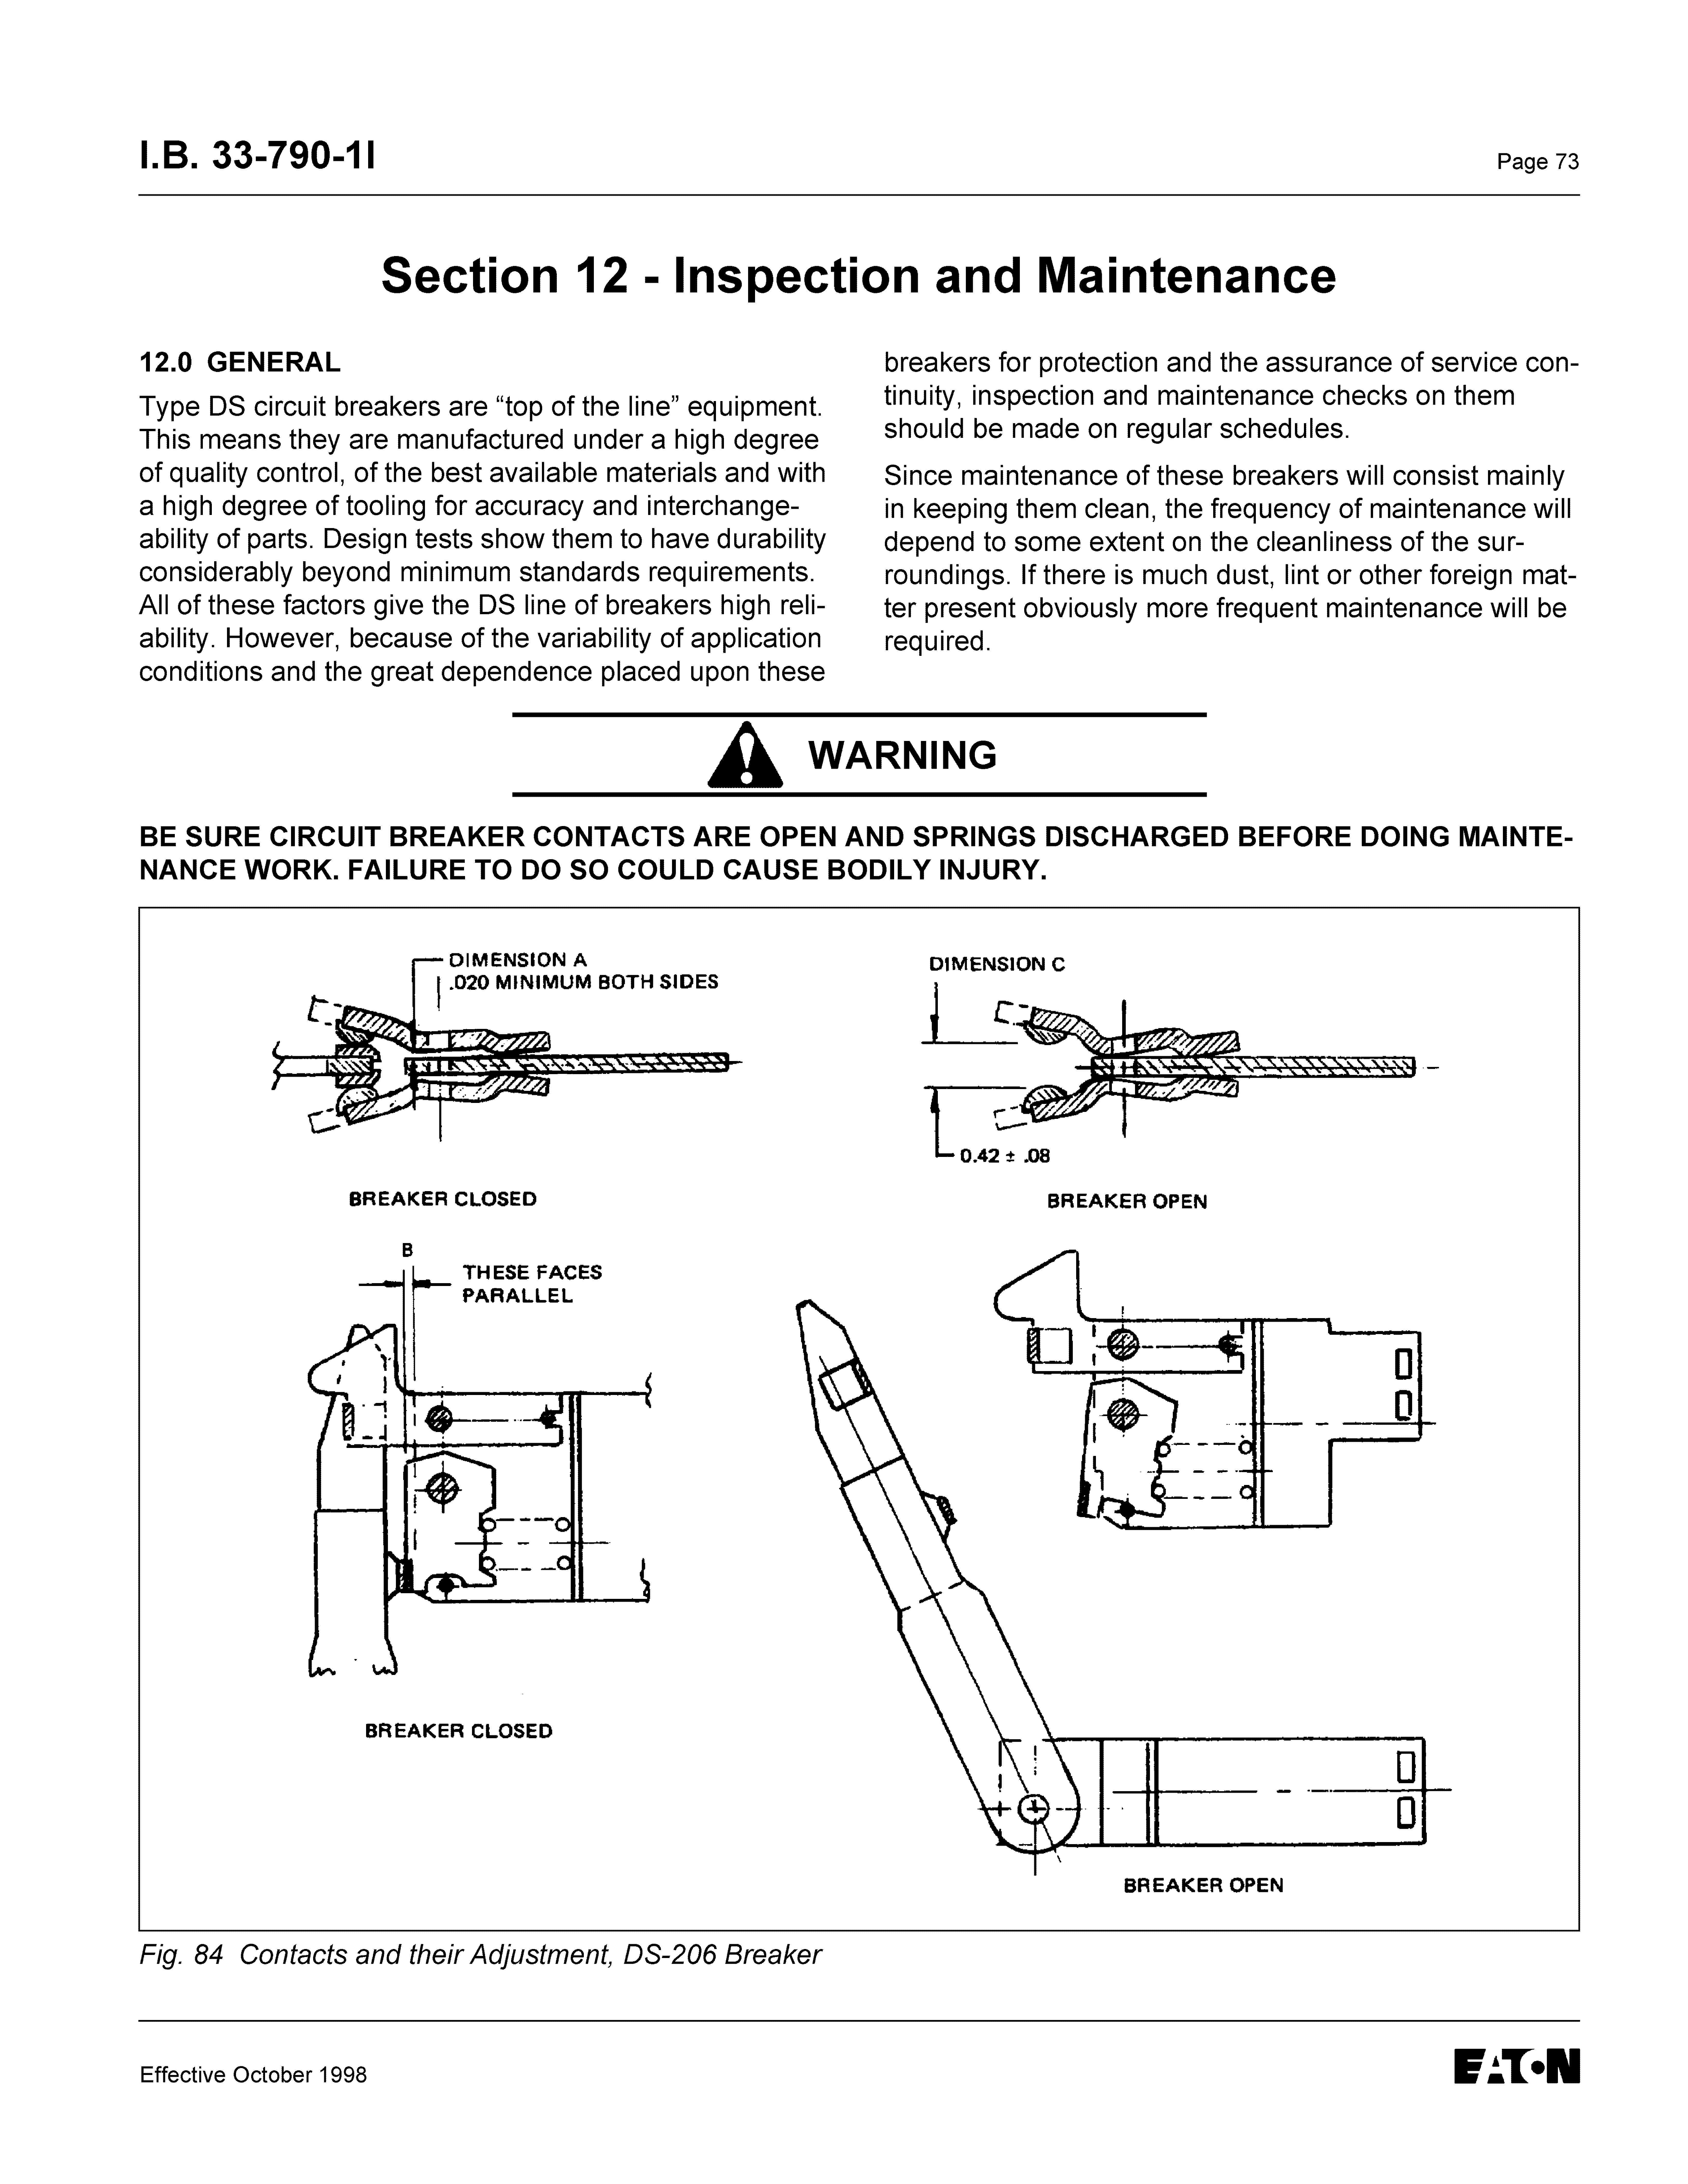 Instructions For Low Voltage Power Circuit Breakers Types Ds And Dsl Replacement Parts Lift Time Delay Breaker 18 33 790 11 Page 73 Section 12 Inspection Maintenance 120